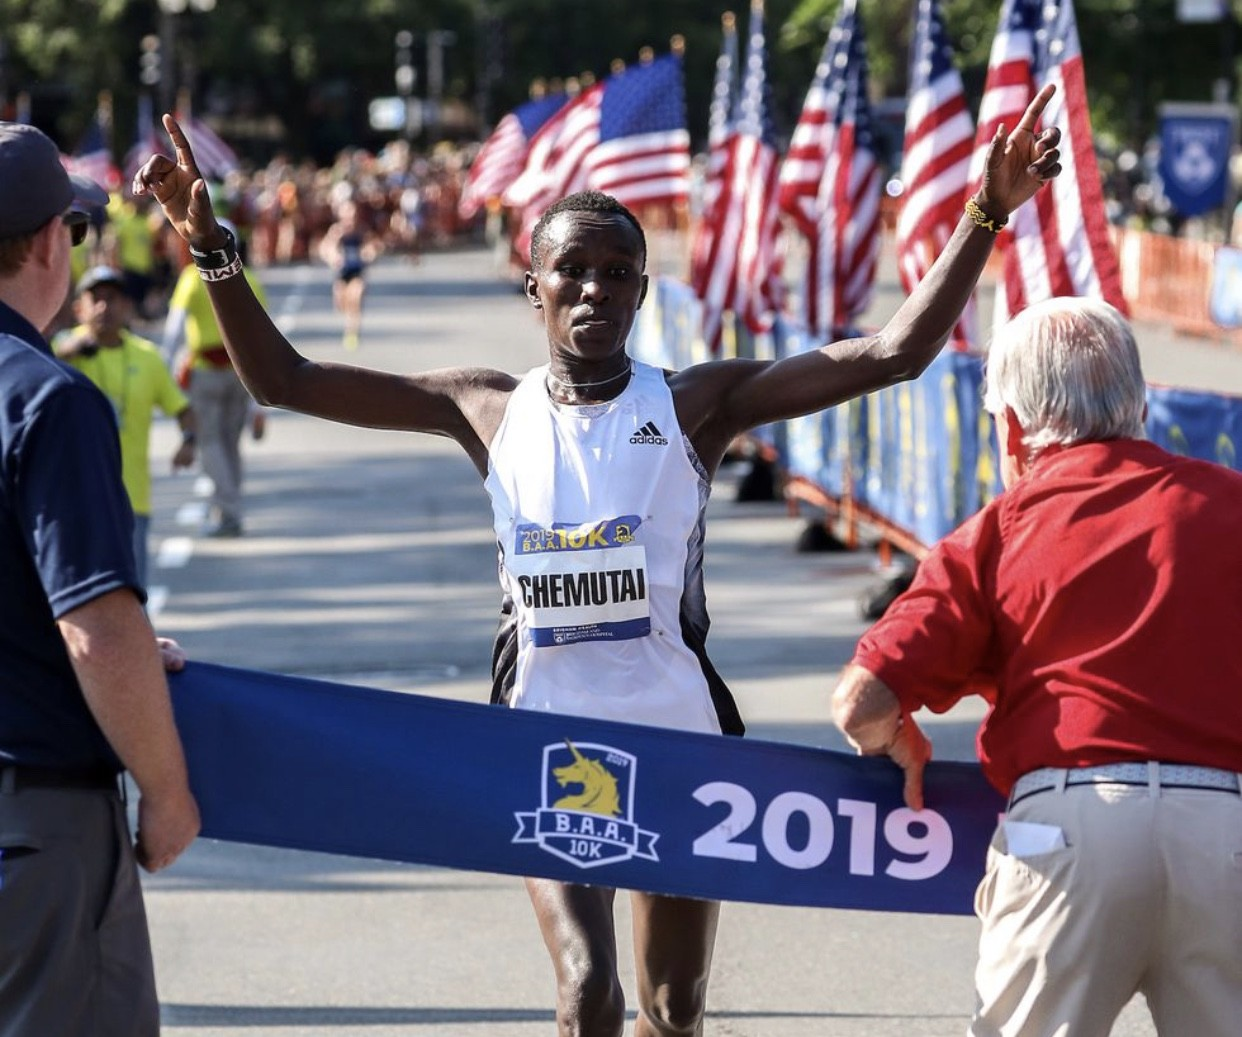 Fancy Chemutai wins BAA 10k women's race and sets course record